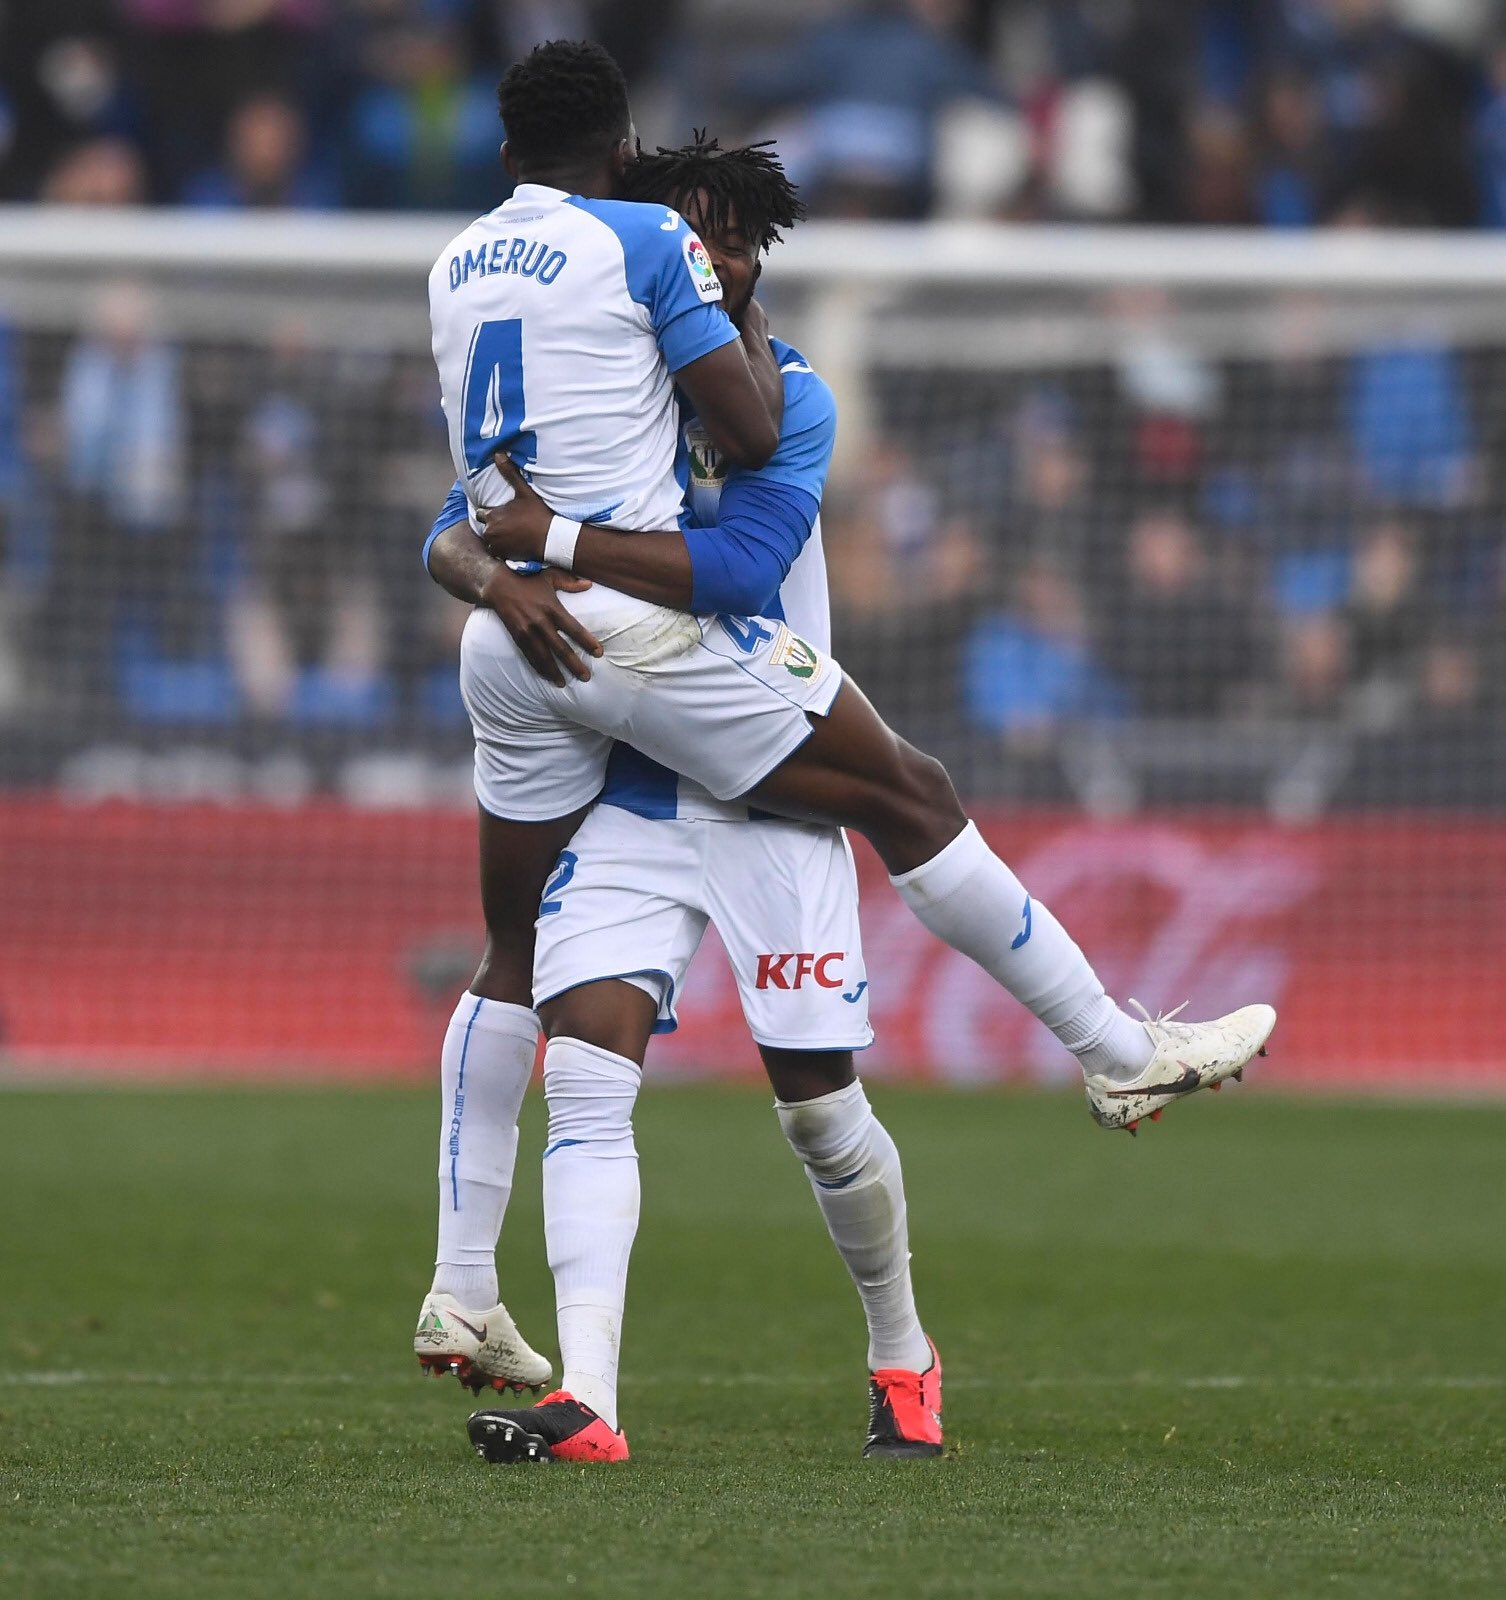 Omeruo Thrilled To Score First-Ever LaLiga Goal For Leganes